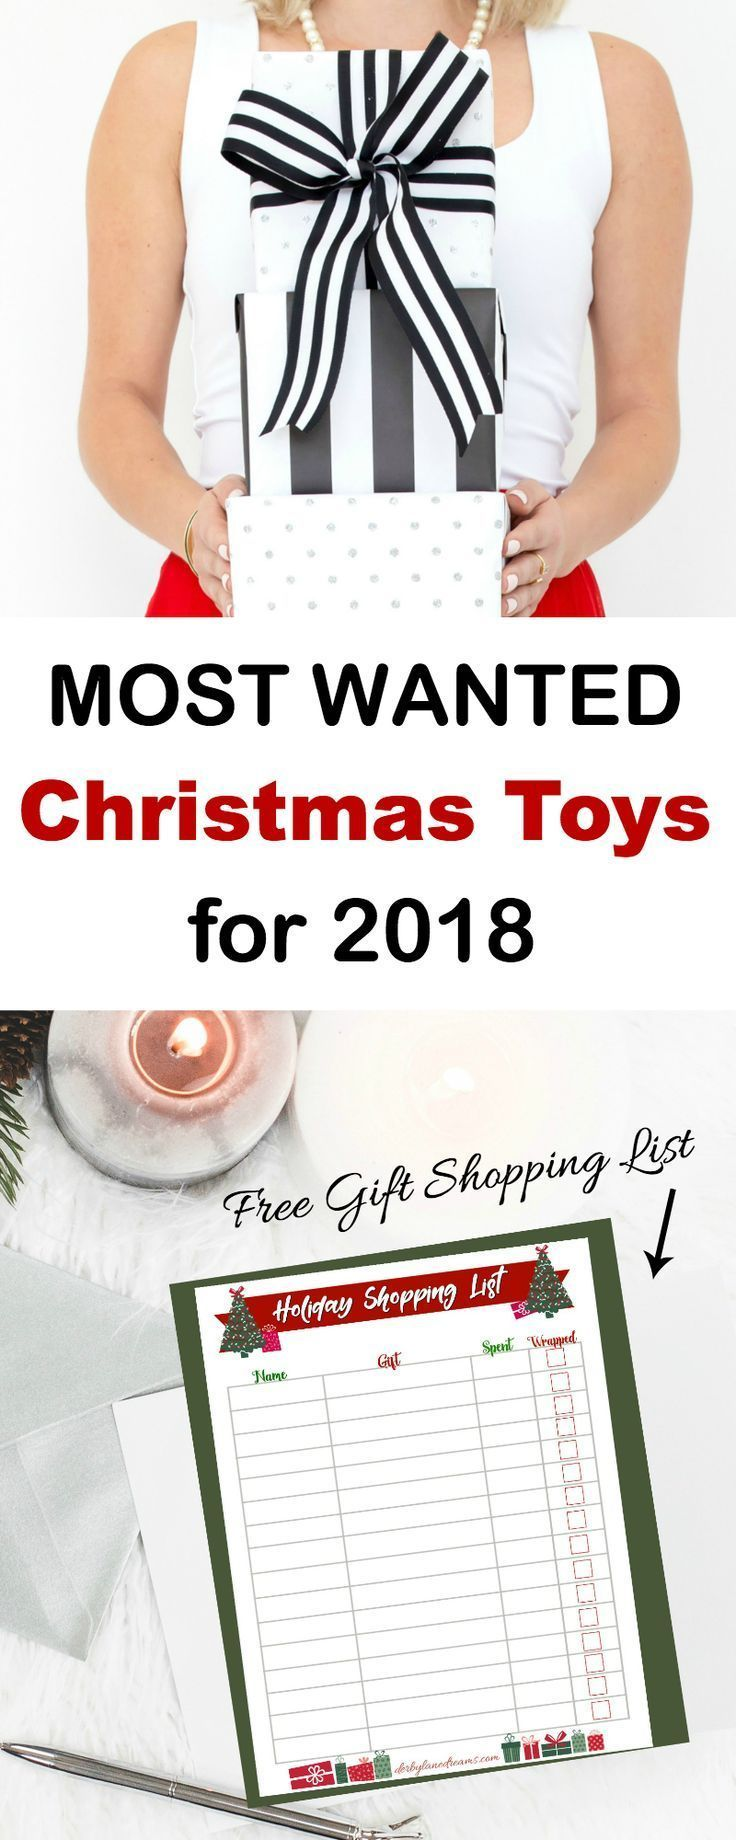 The Hottest Holiday Toys for Christmas 2018 | Best Blogging ...